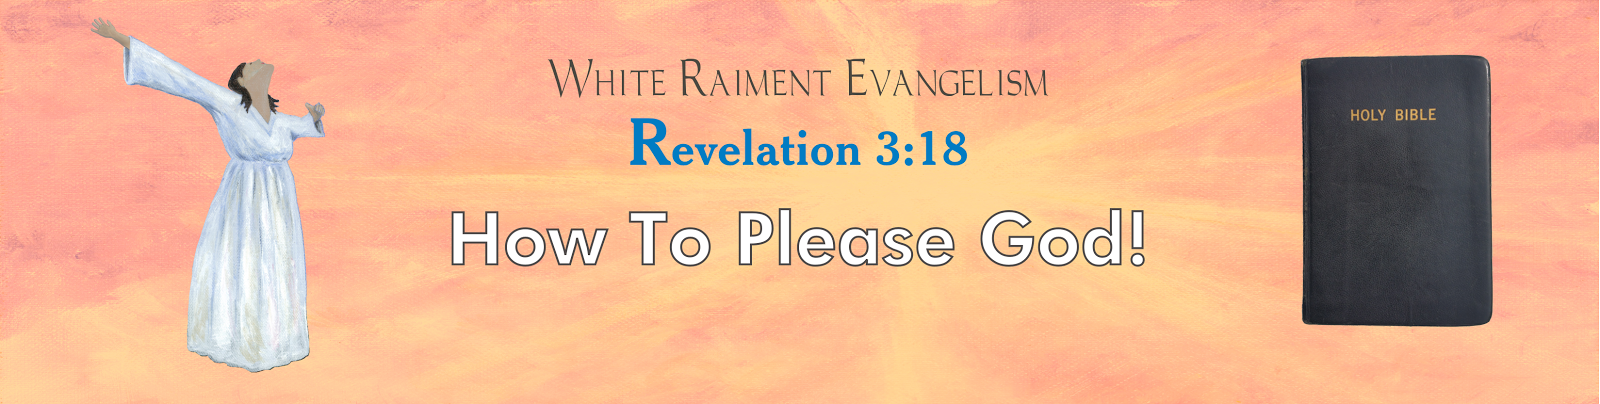 White Raiment Evangelism: How To Please God